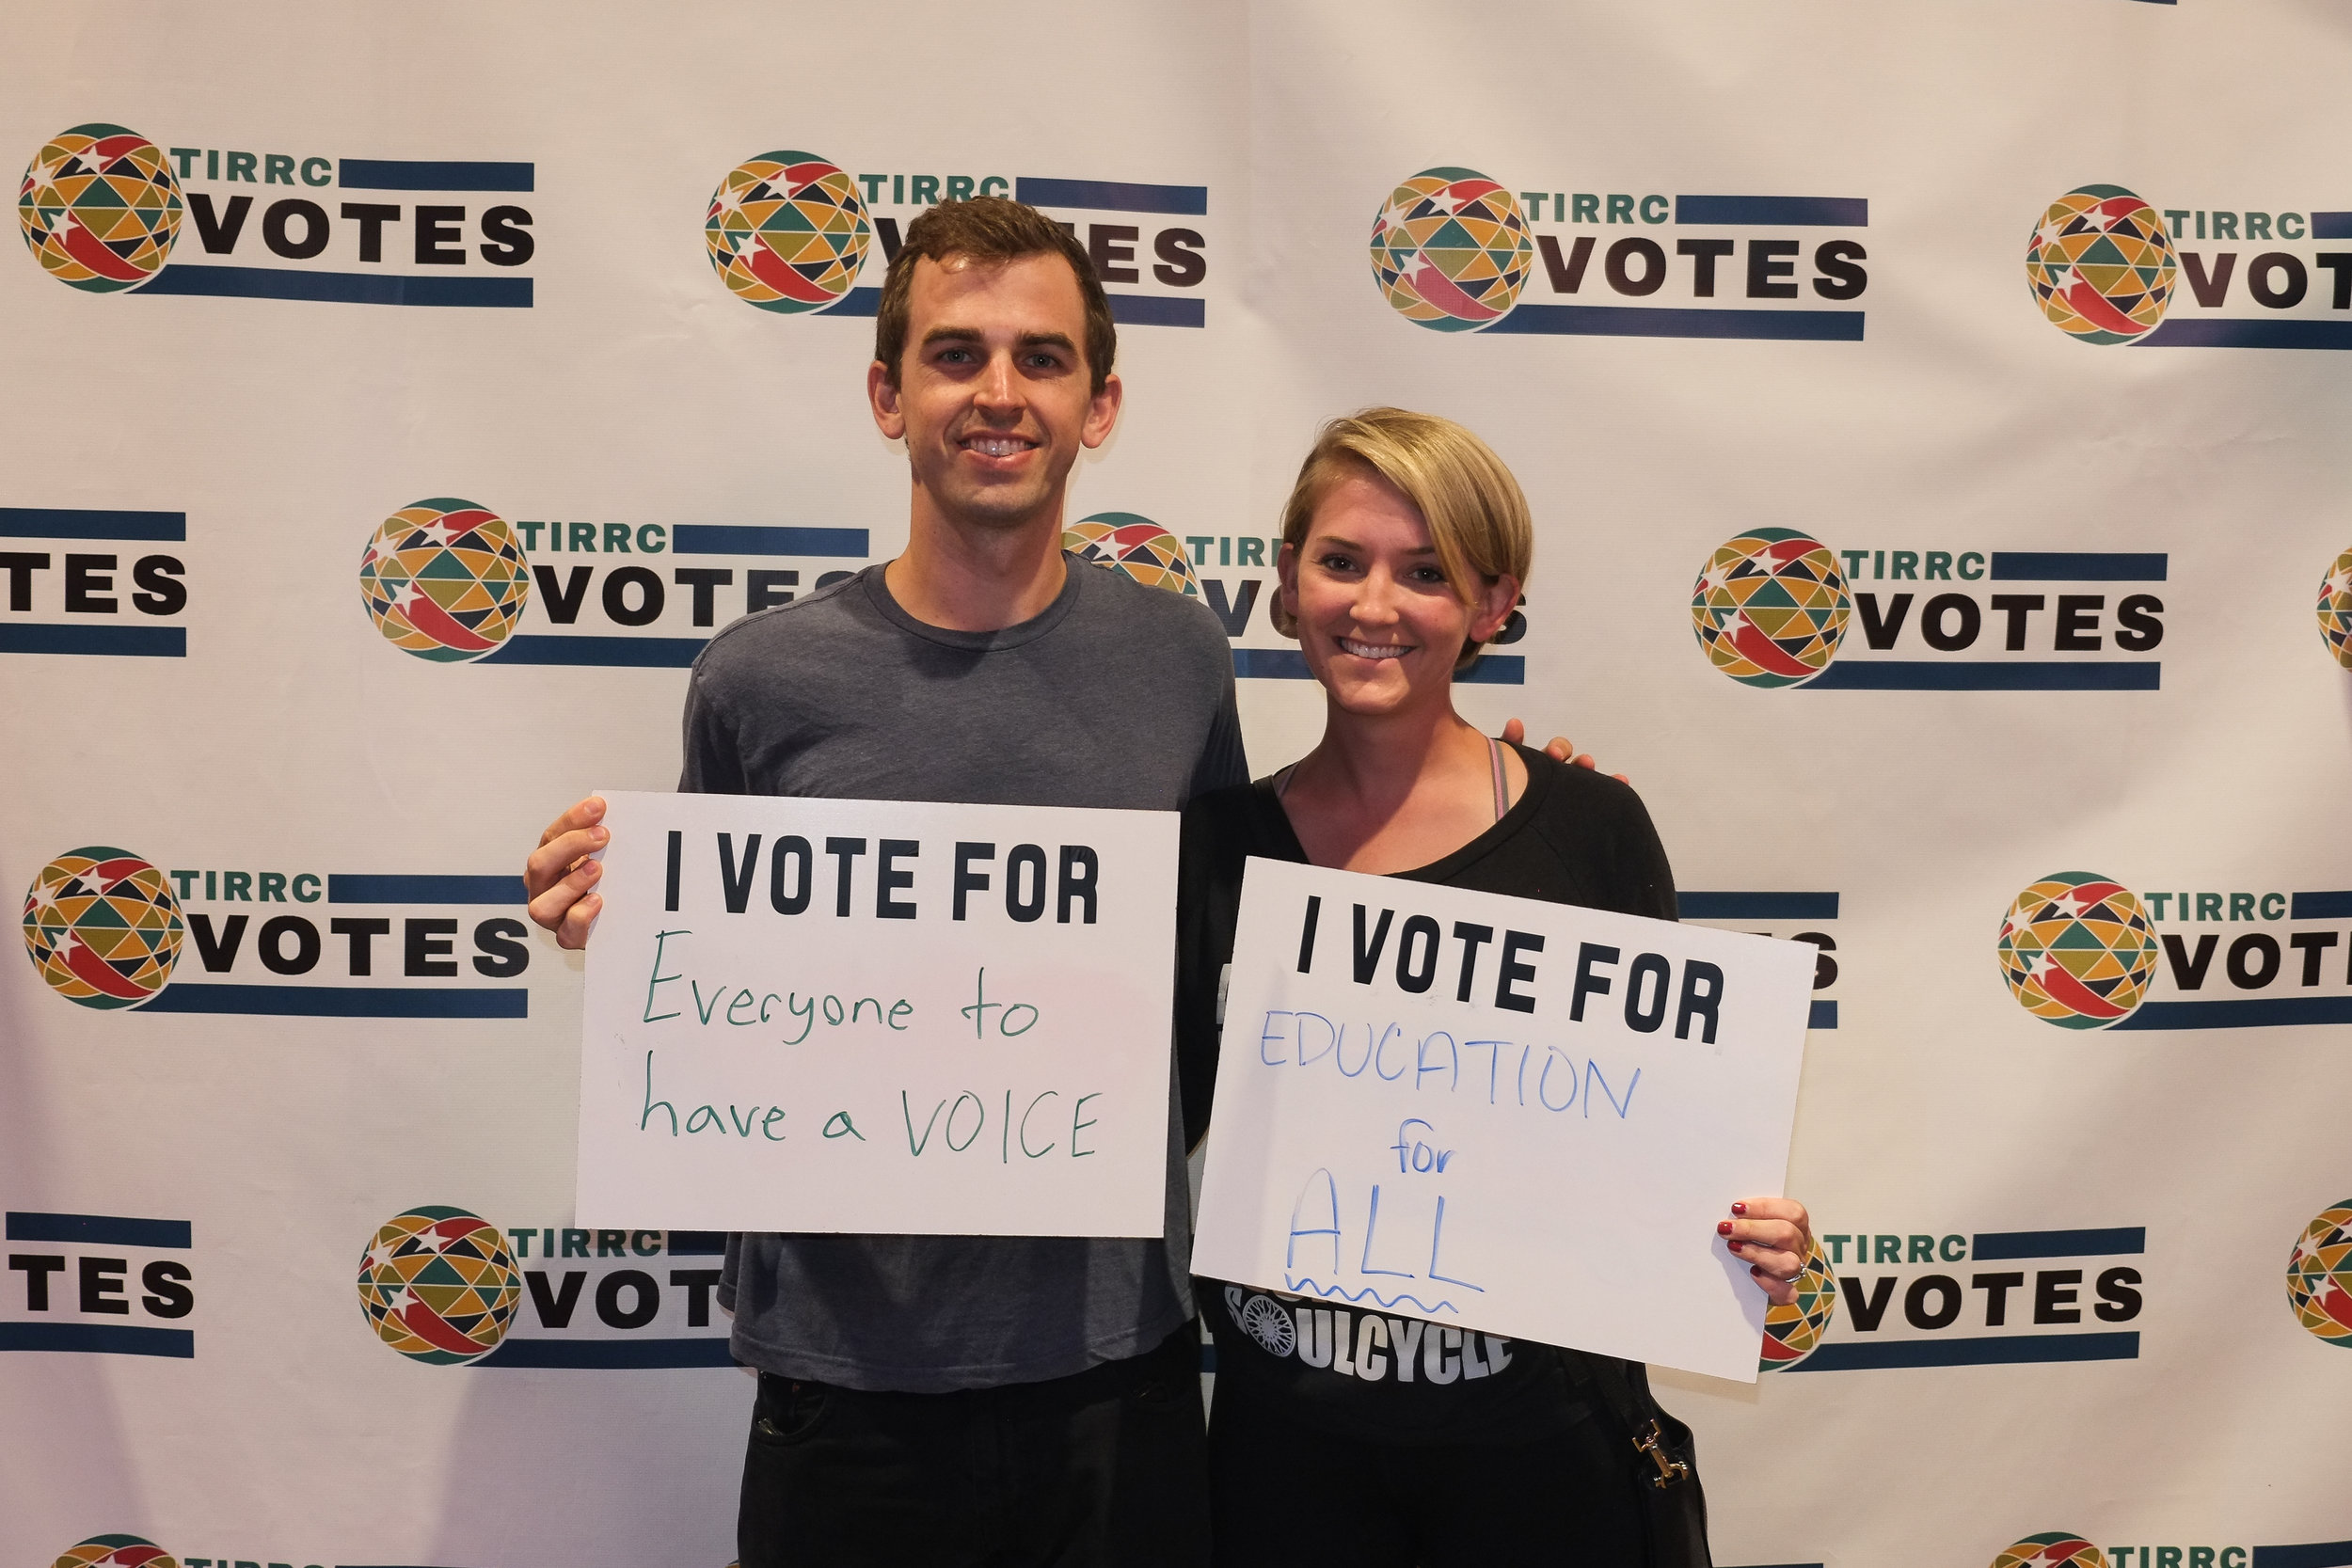 TIRRCVotes-PhotoBooth-36.jpg